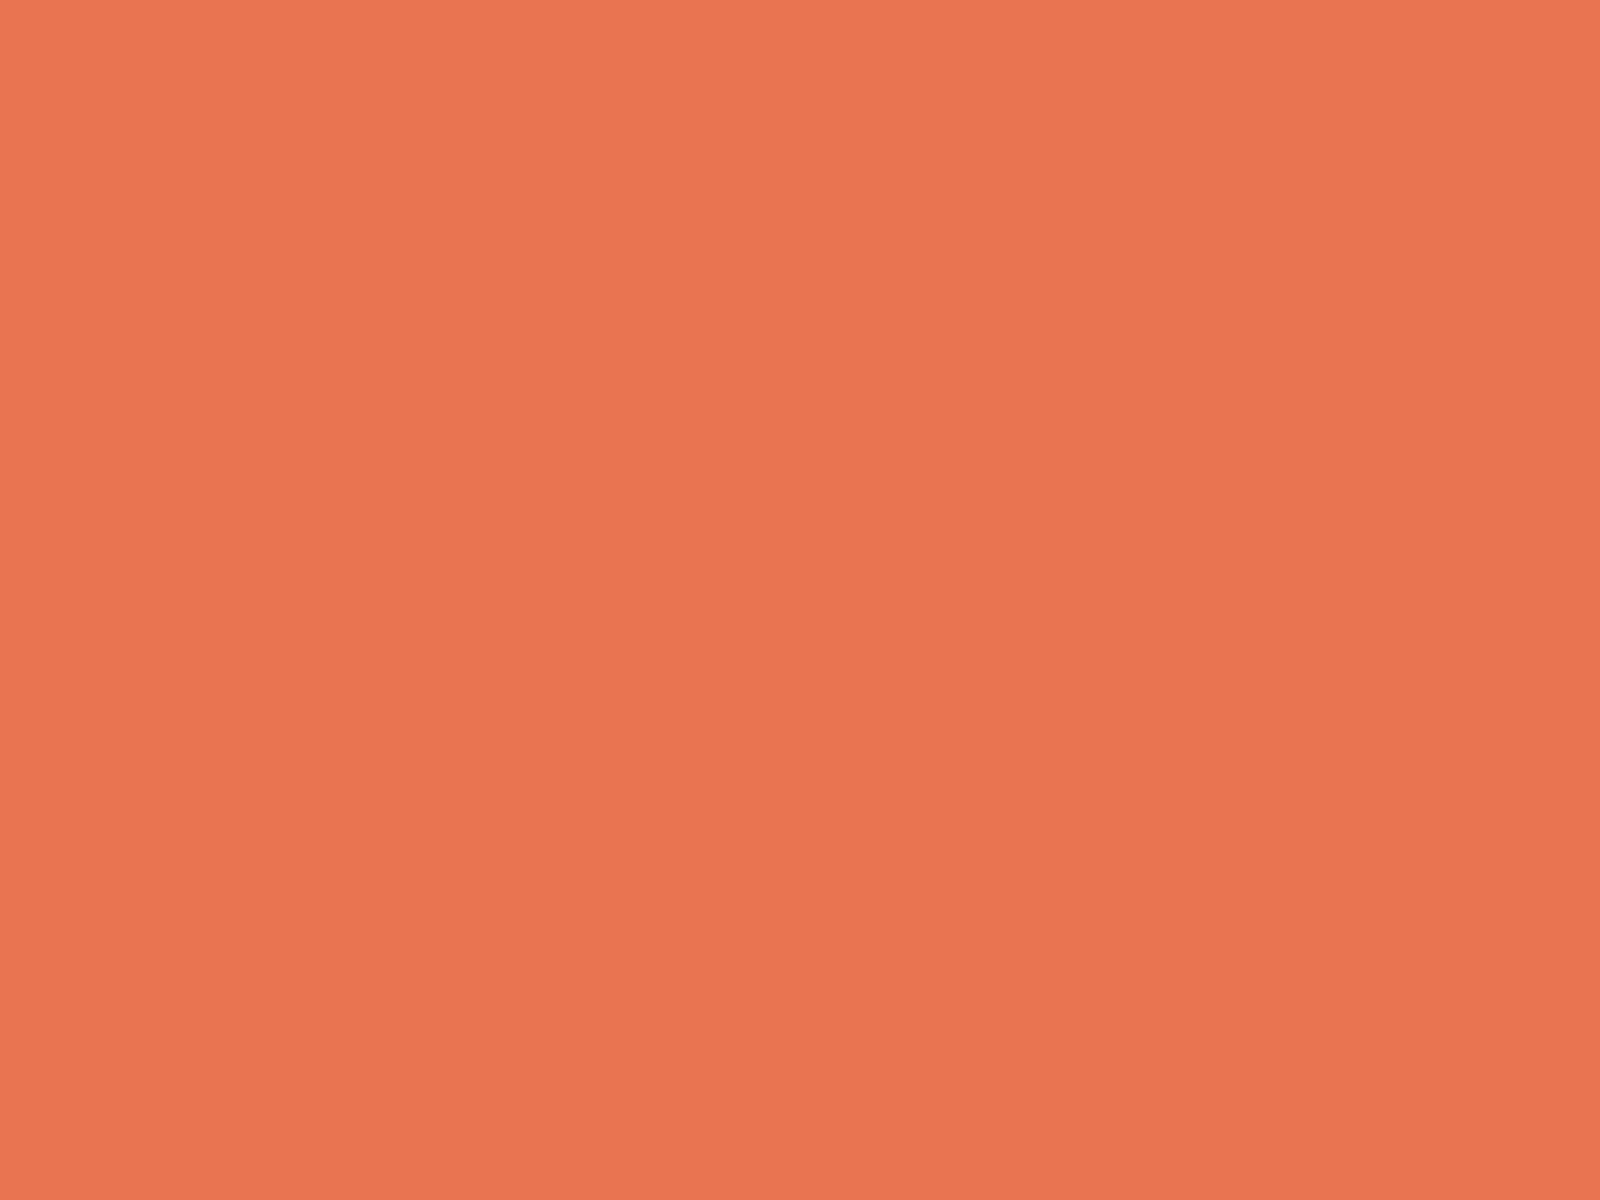 1600x1200 Burnt Sienna Solid Color Background